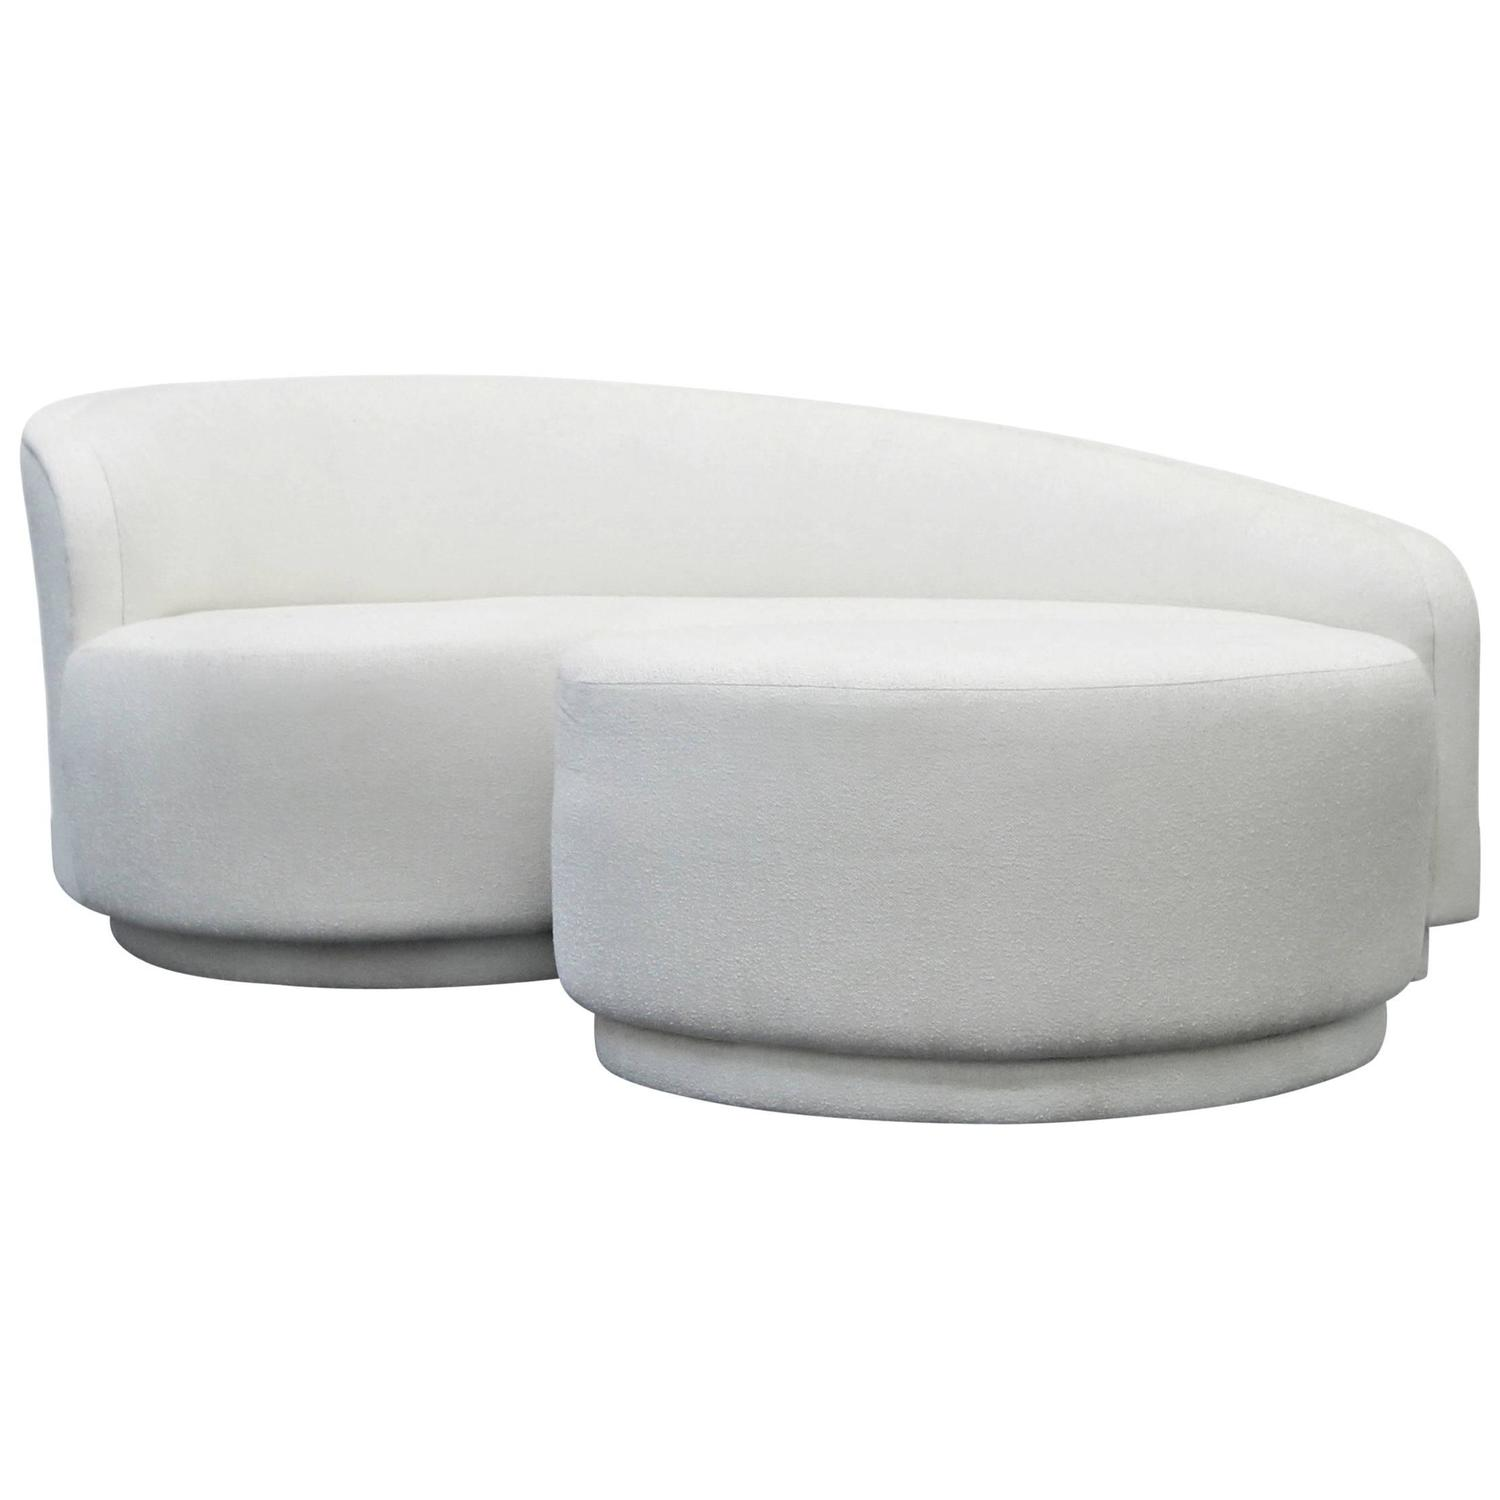 Petite Curved Sofa and Ottoman by Vladimir Kagan for Weiman at 1stdibs